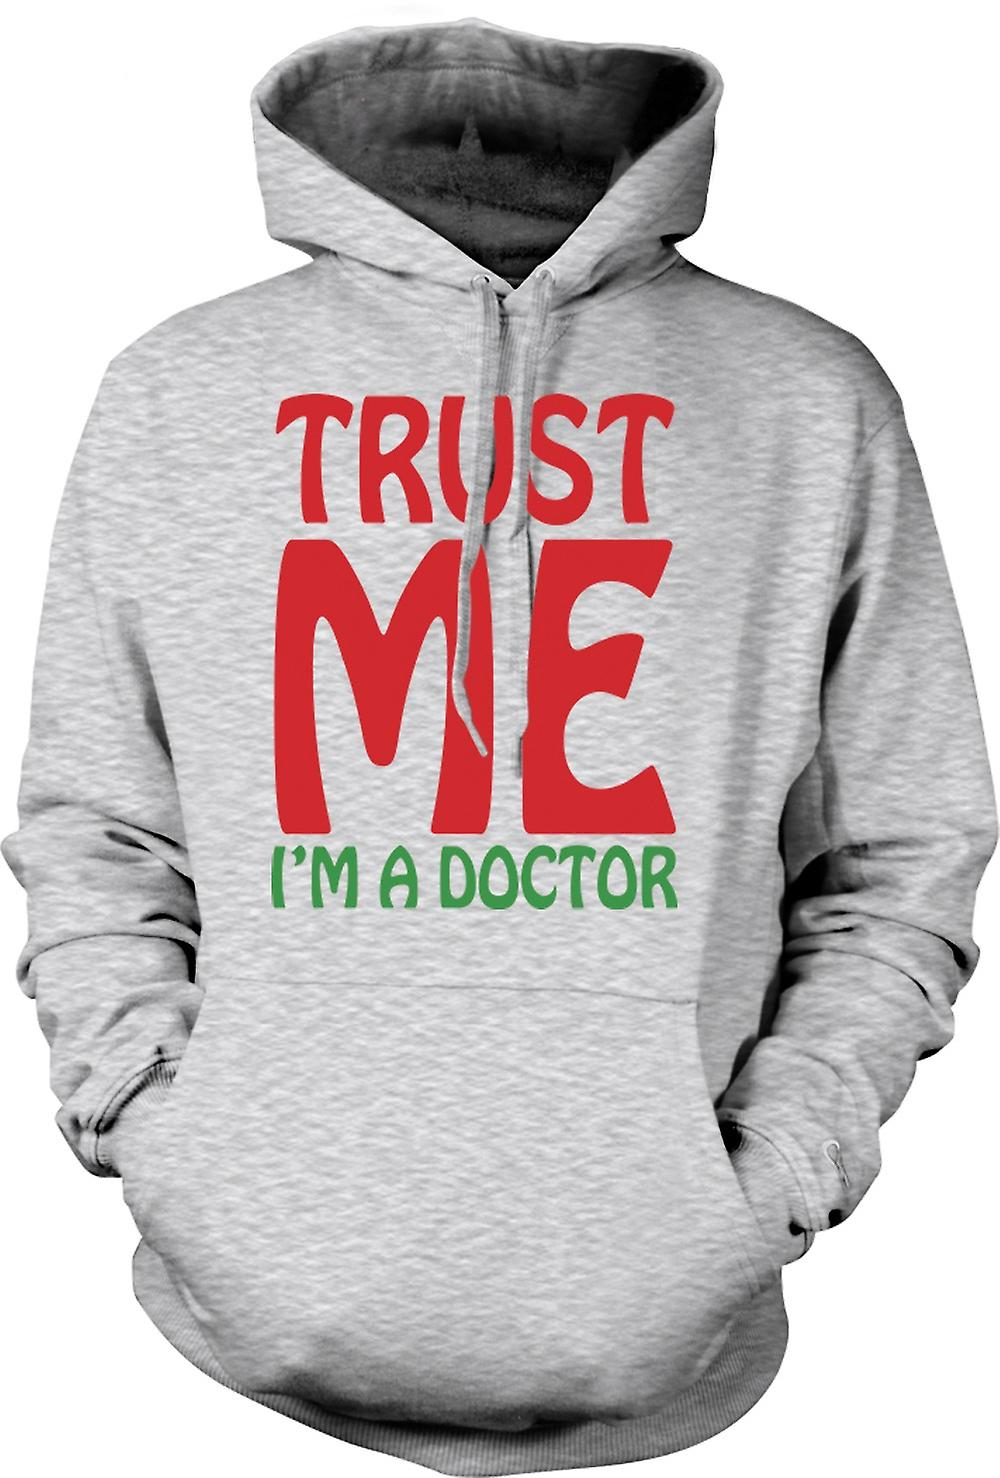 Mens Hoodie - Trust Me I'm A Doctor - Funny